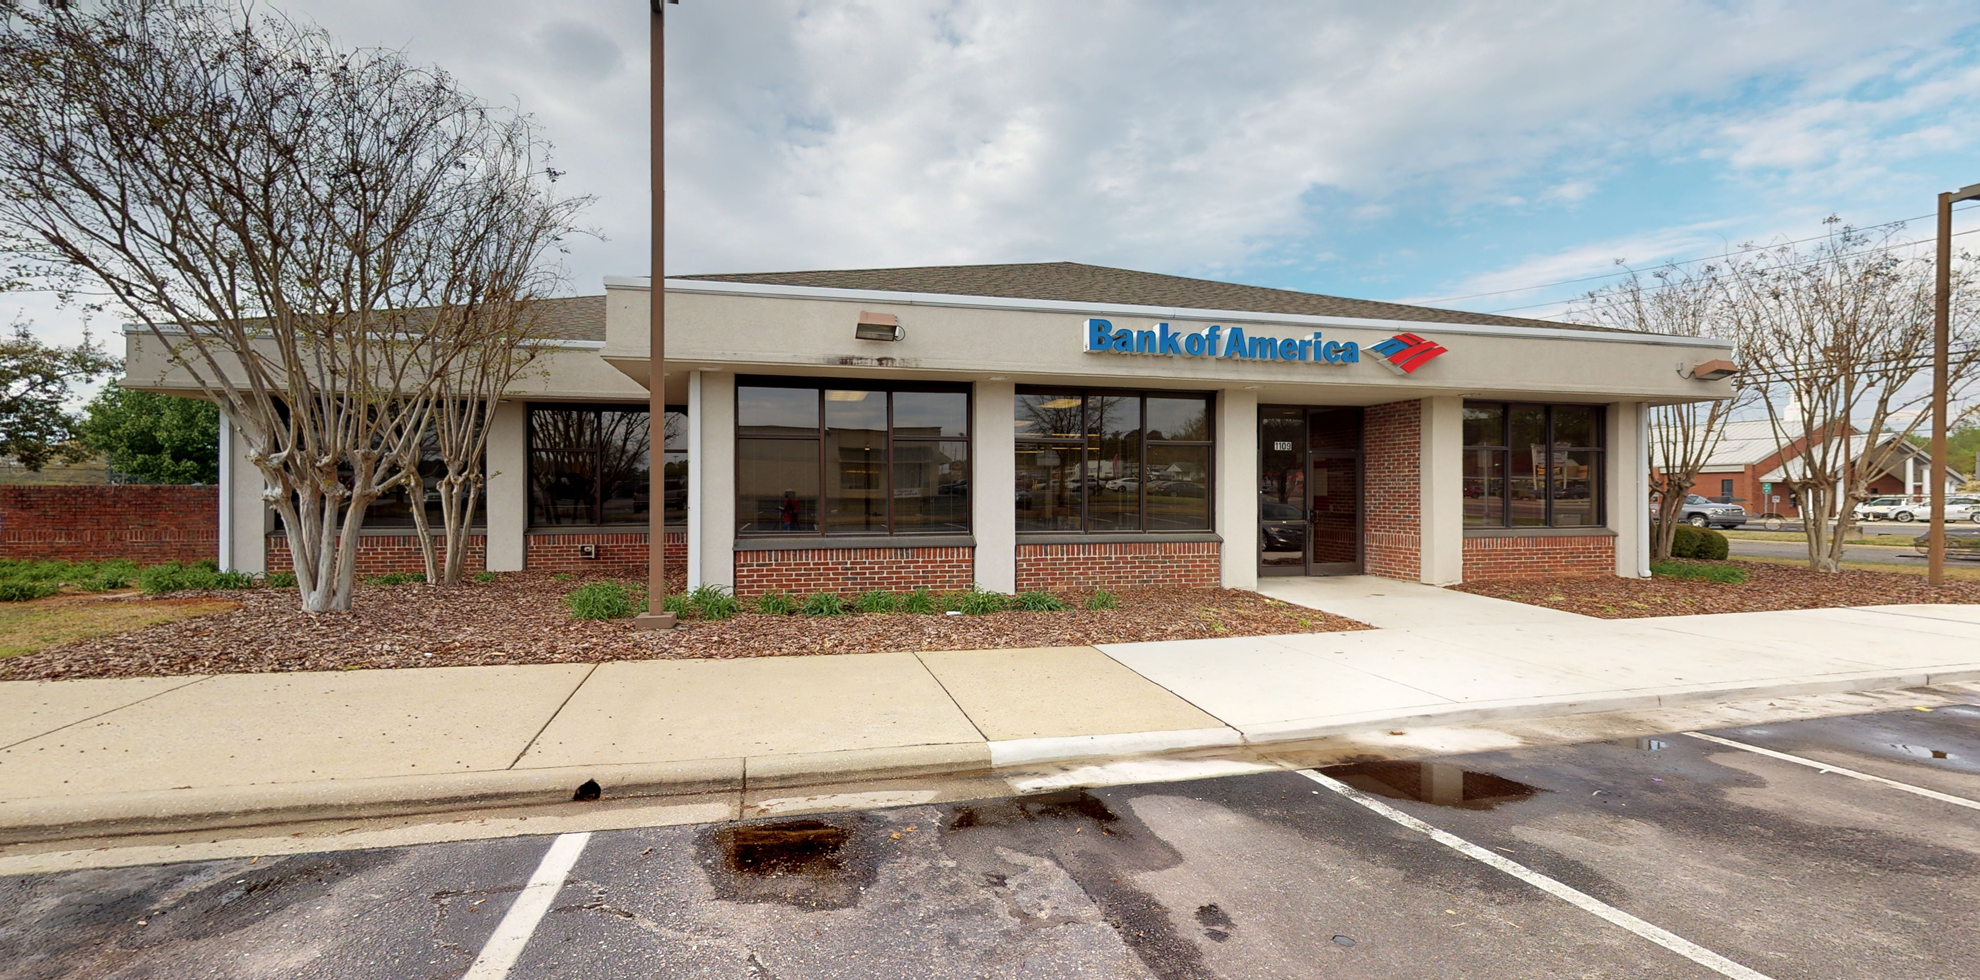 Bank of America financial center with drive-thru ATM and teller | 1109 N Bragg Blvd, Spring Lake, NC 28390